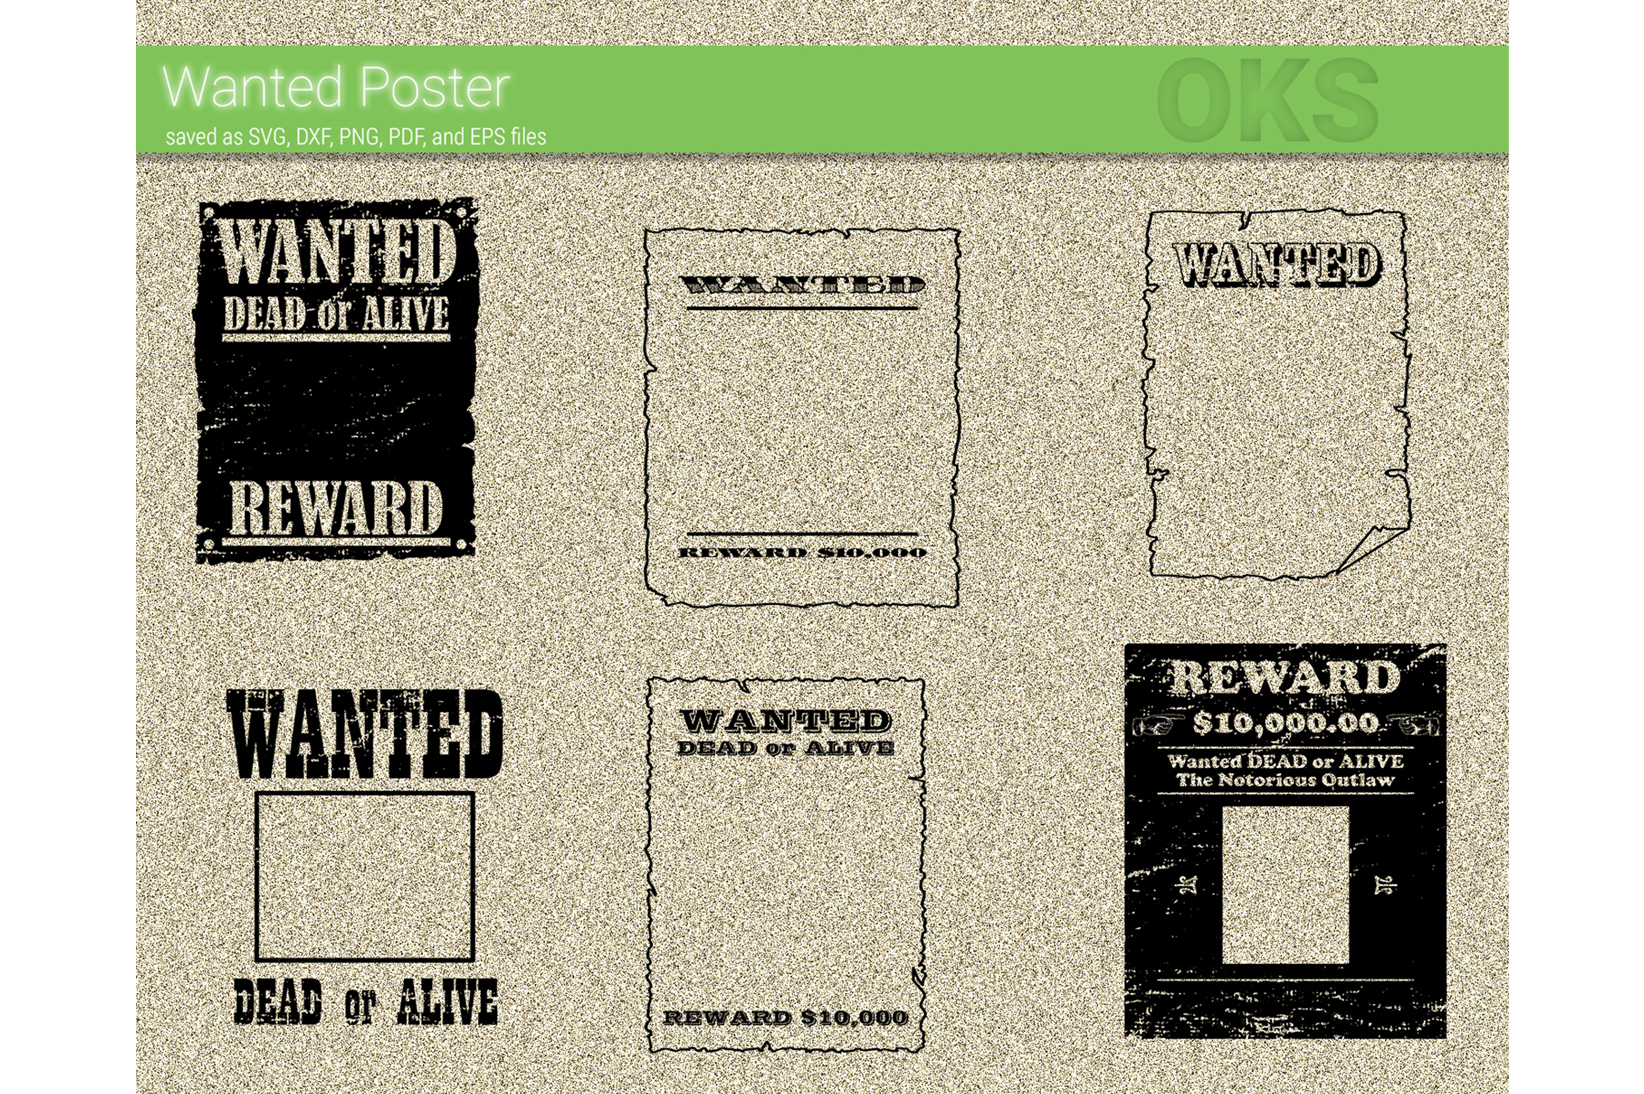 Download Free Wanted Poster Vector Graphic By Crafteroks Creative Fabrica for Cricut Explore, Silhouette and other cutting machines.